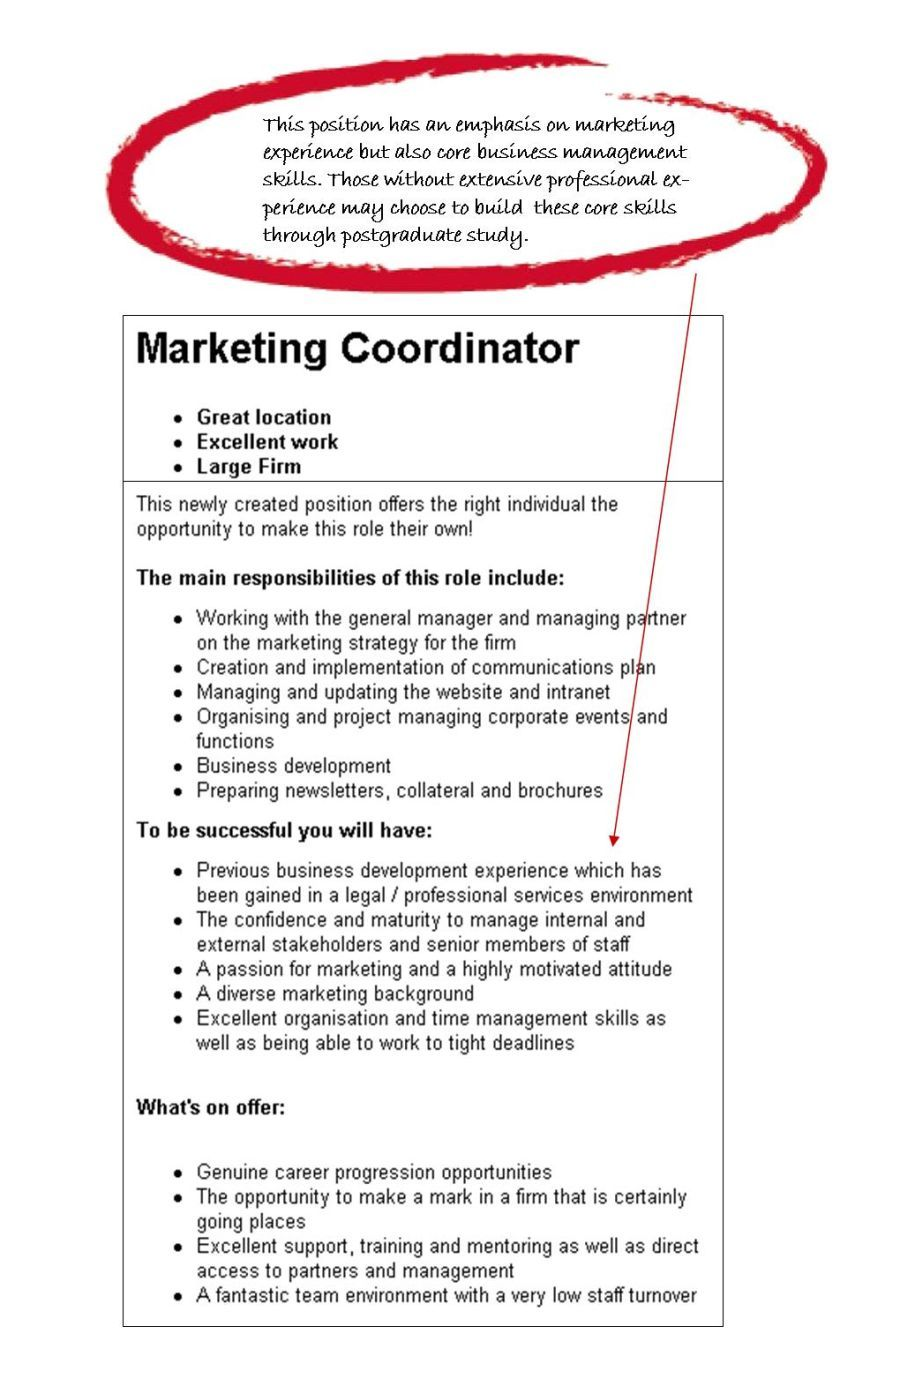 A Good Objective For Resume Objectives For Resume  Resume  Pinterest  Resume Objective And